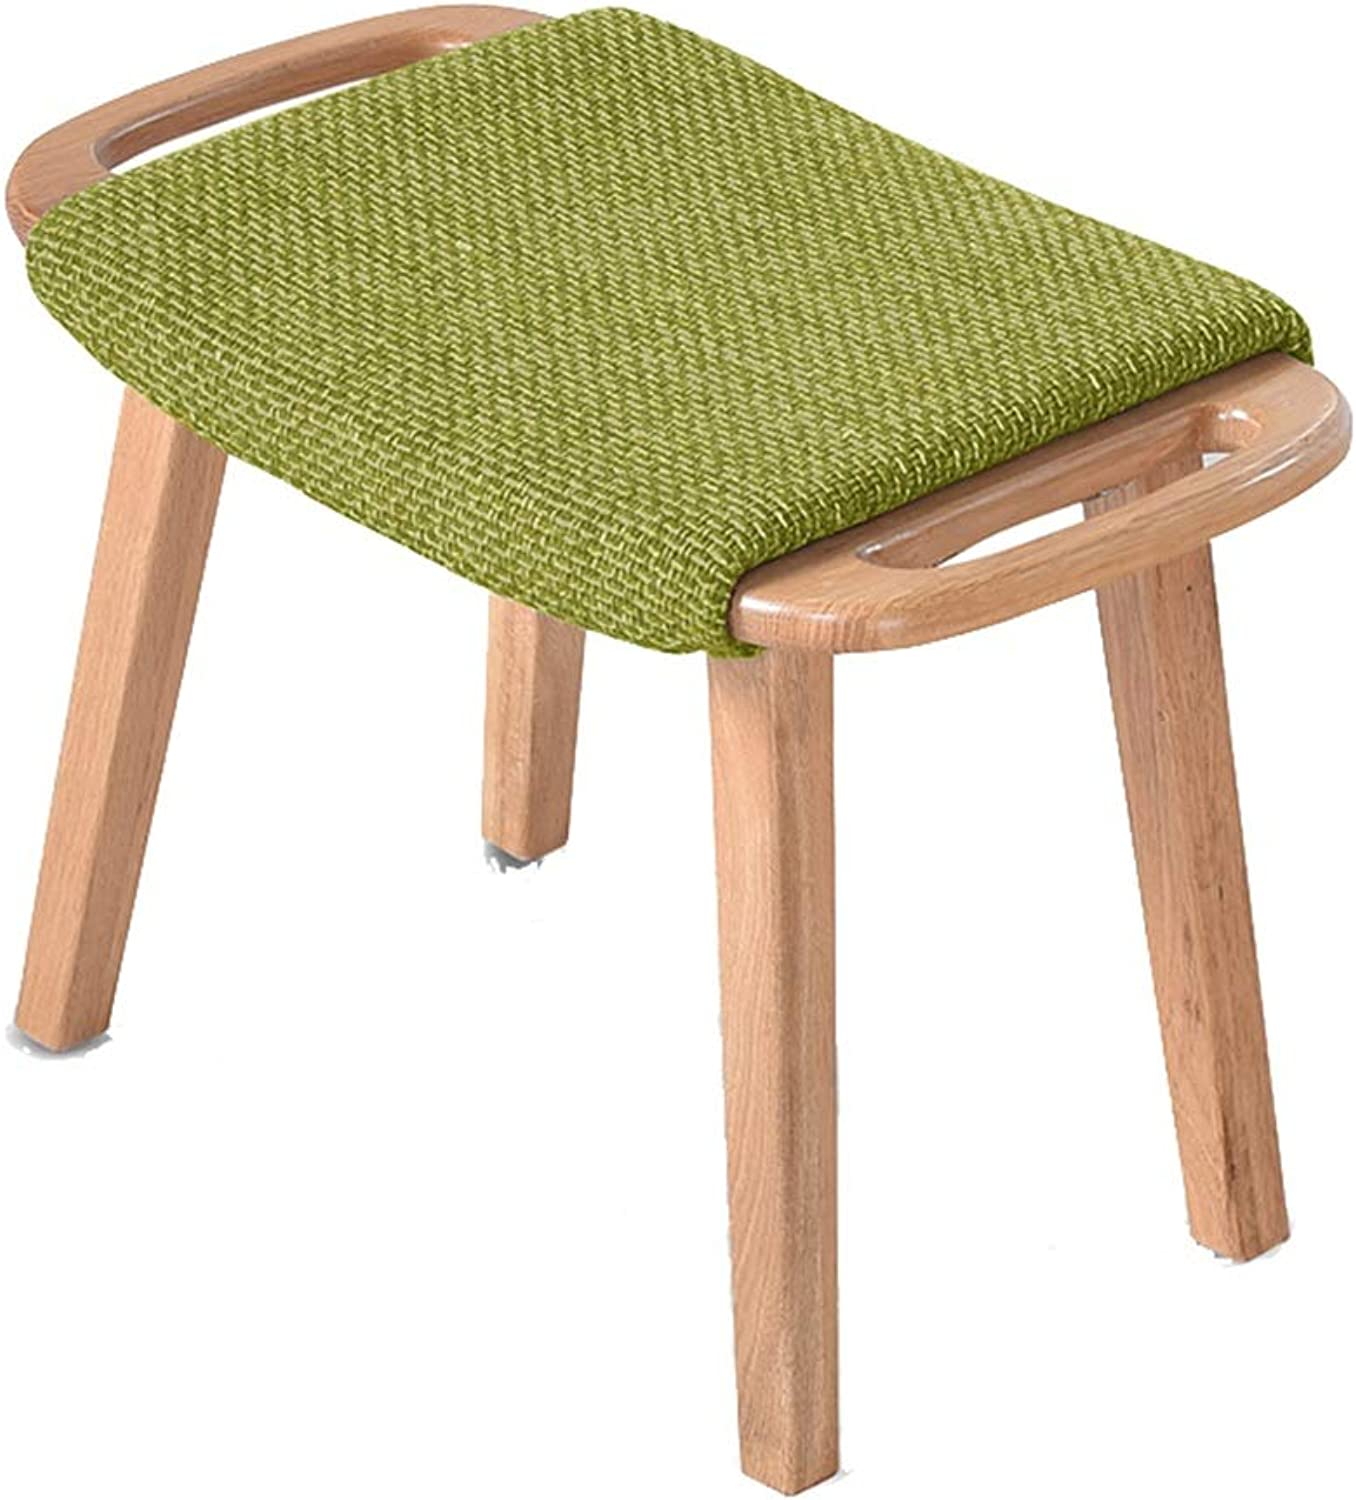 AIDELAI Bar Stool Chair- Stool Solid Wood Home Dressing Up Stool Sofa Stool Pedal Short shoes Bench Bedroom Bench Saddle Seat (color   B)